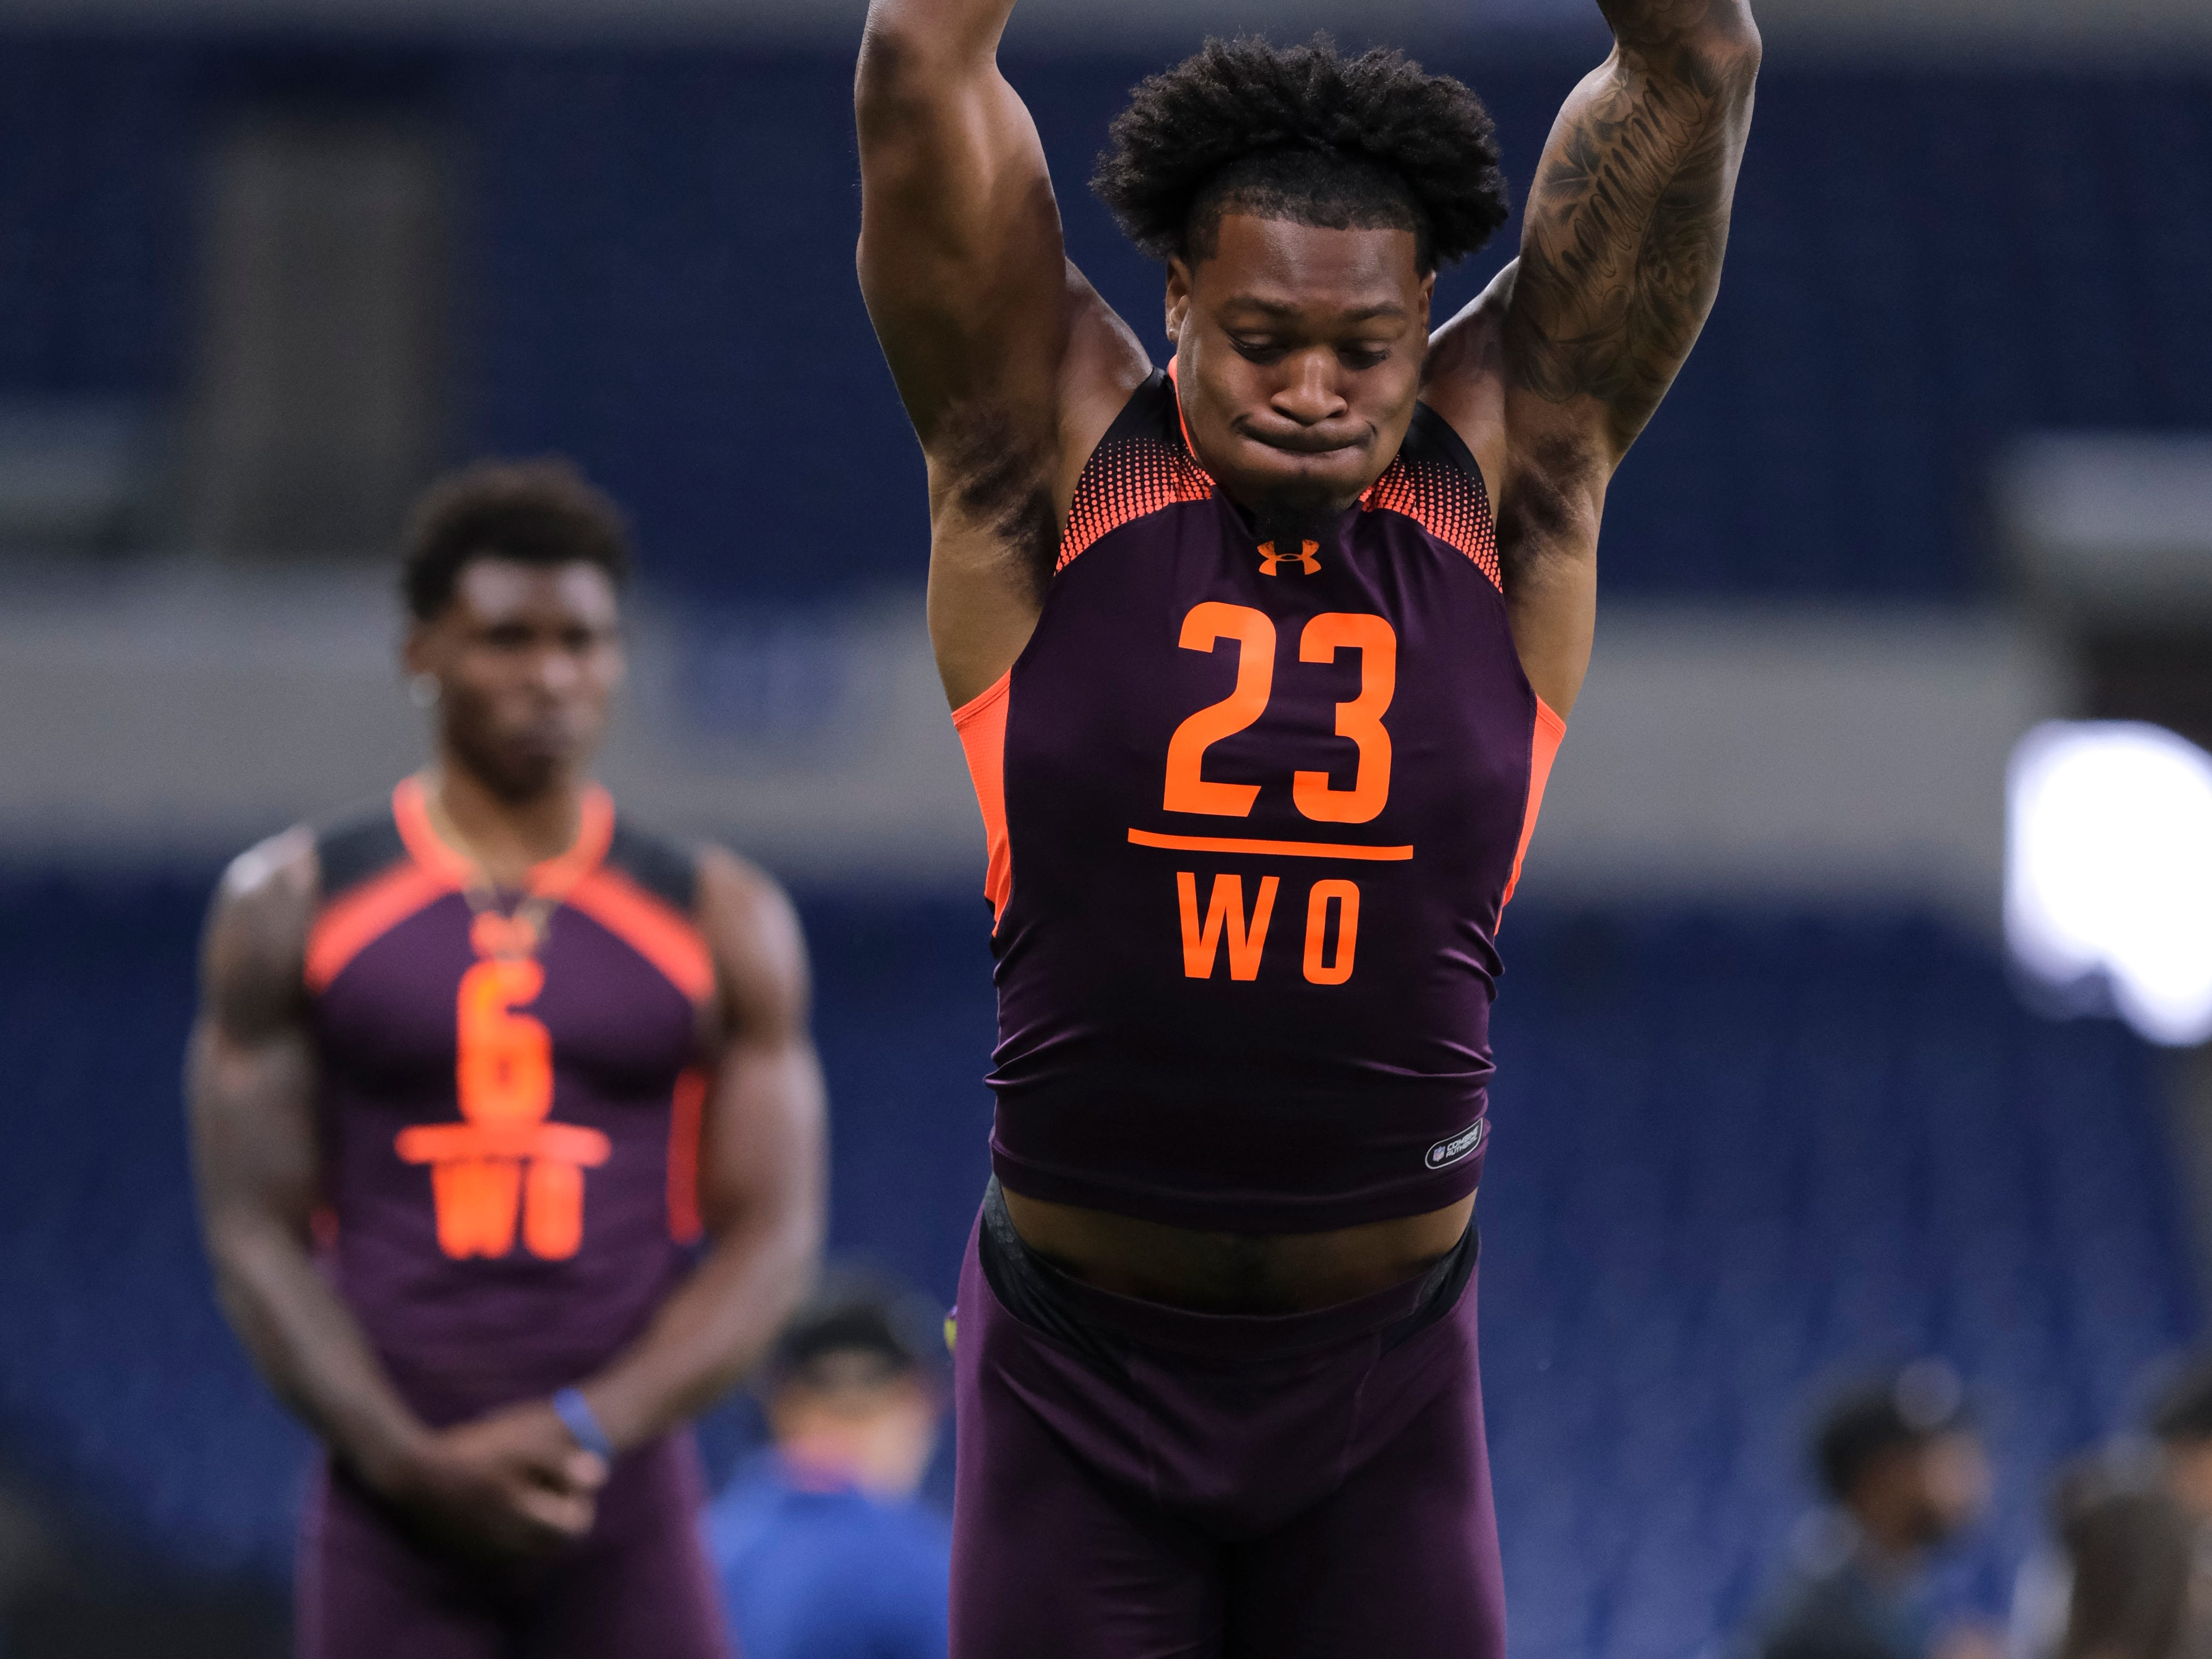 Arizona State wide receiver N'Keal Harry participates in the NFL football scouting combine in Indianapolis, Thursday, Feb. 28, 2019. (AP Photo/AJ Mast)